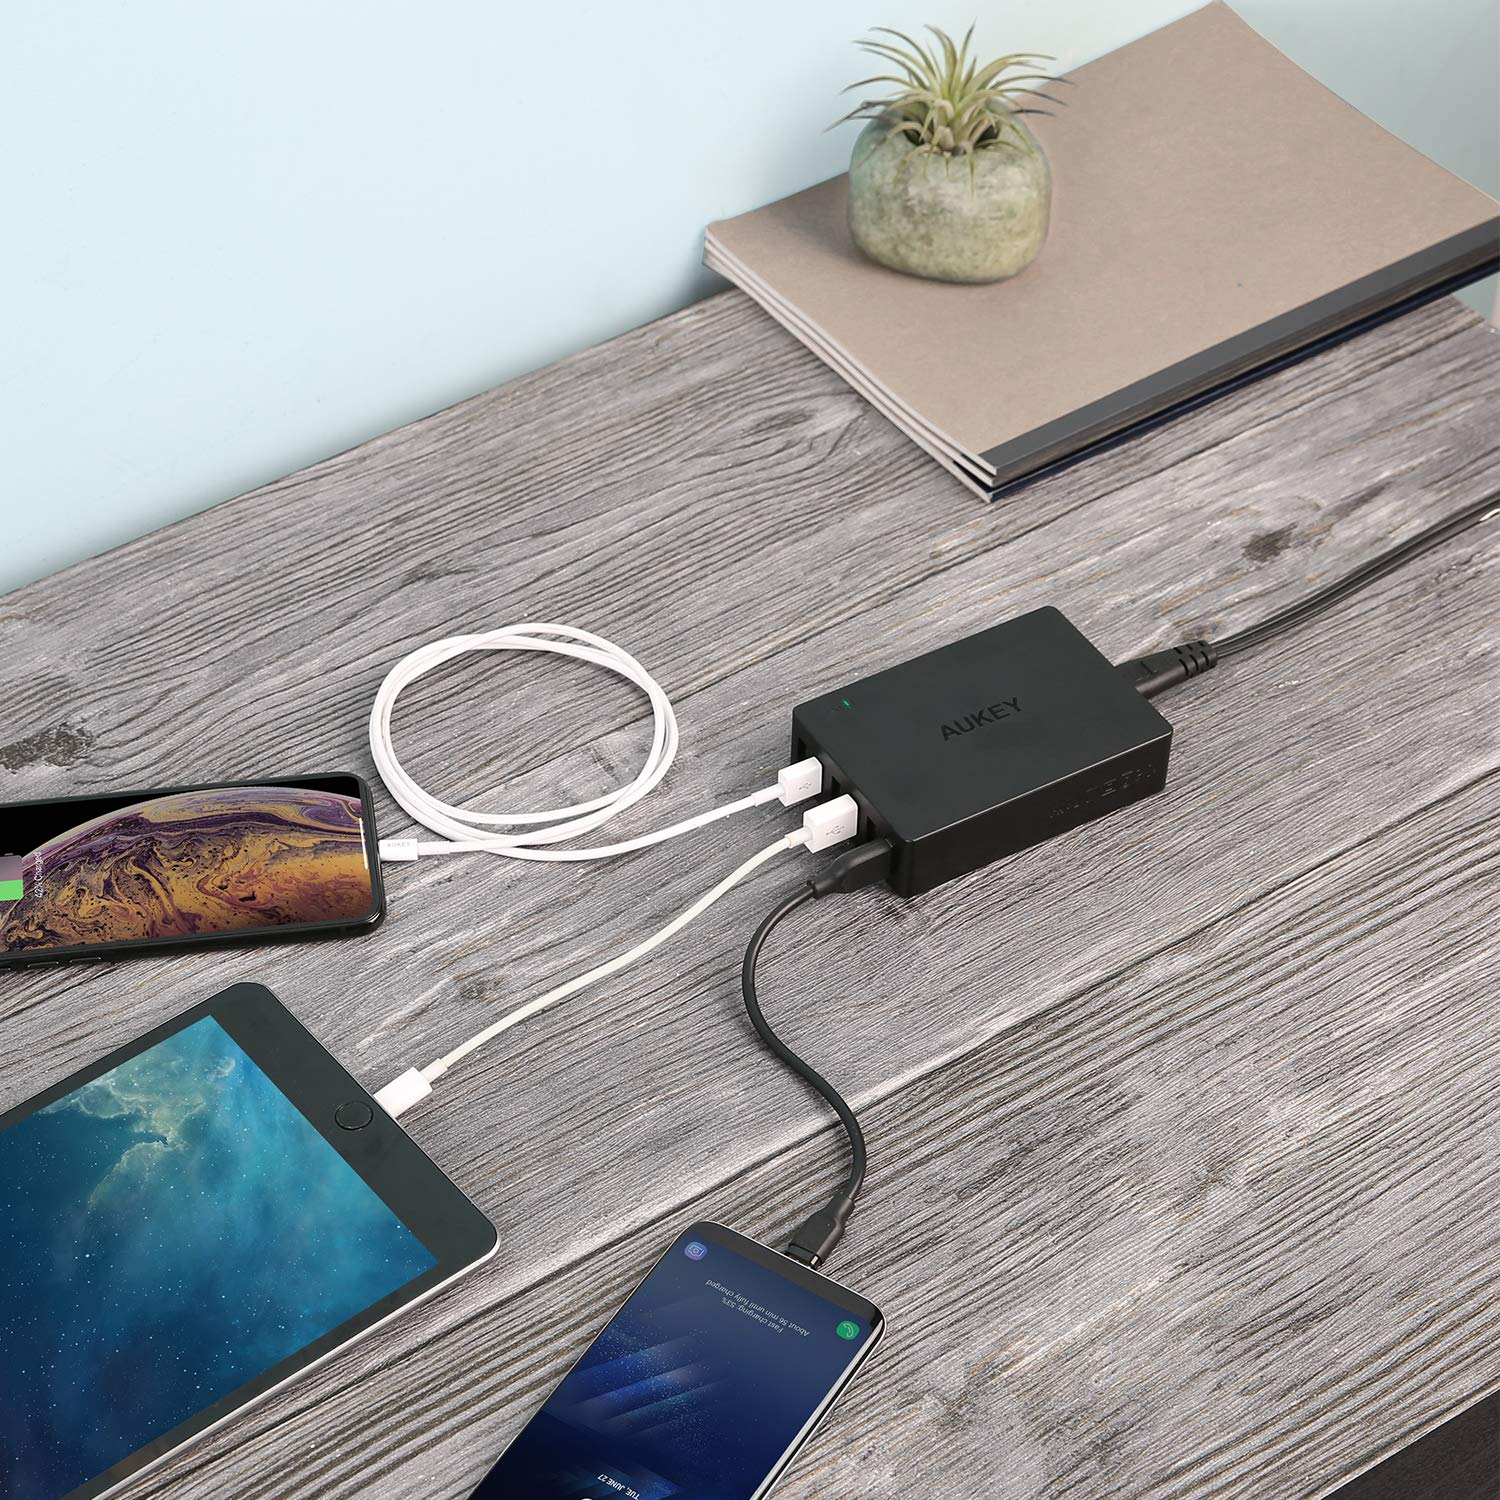 iPhone X Air 2 and More 8 Plus Quick Charge 3.0 AUKEY 60W USB Charger with 6-Port USB Charging Station for Samsung Galaxy Note8 iPad Pro